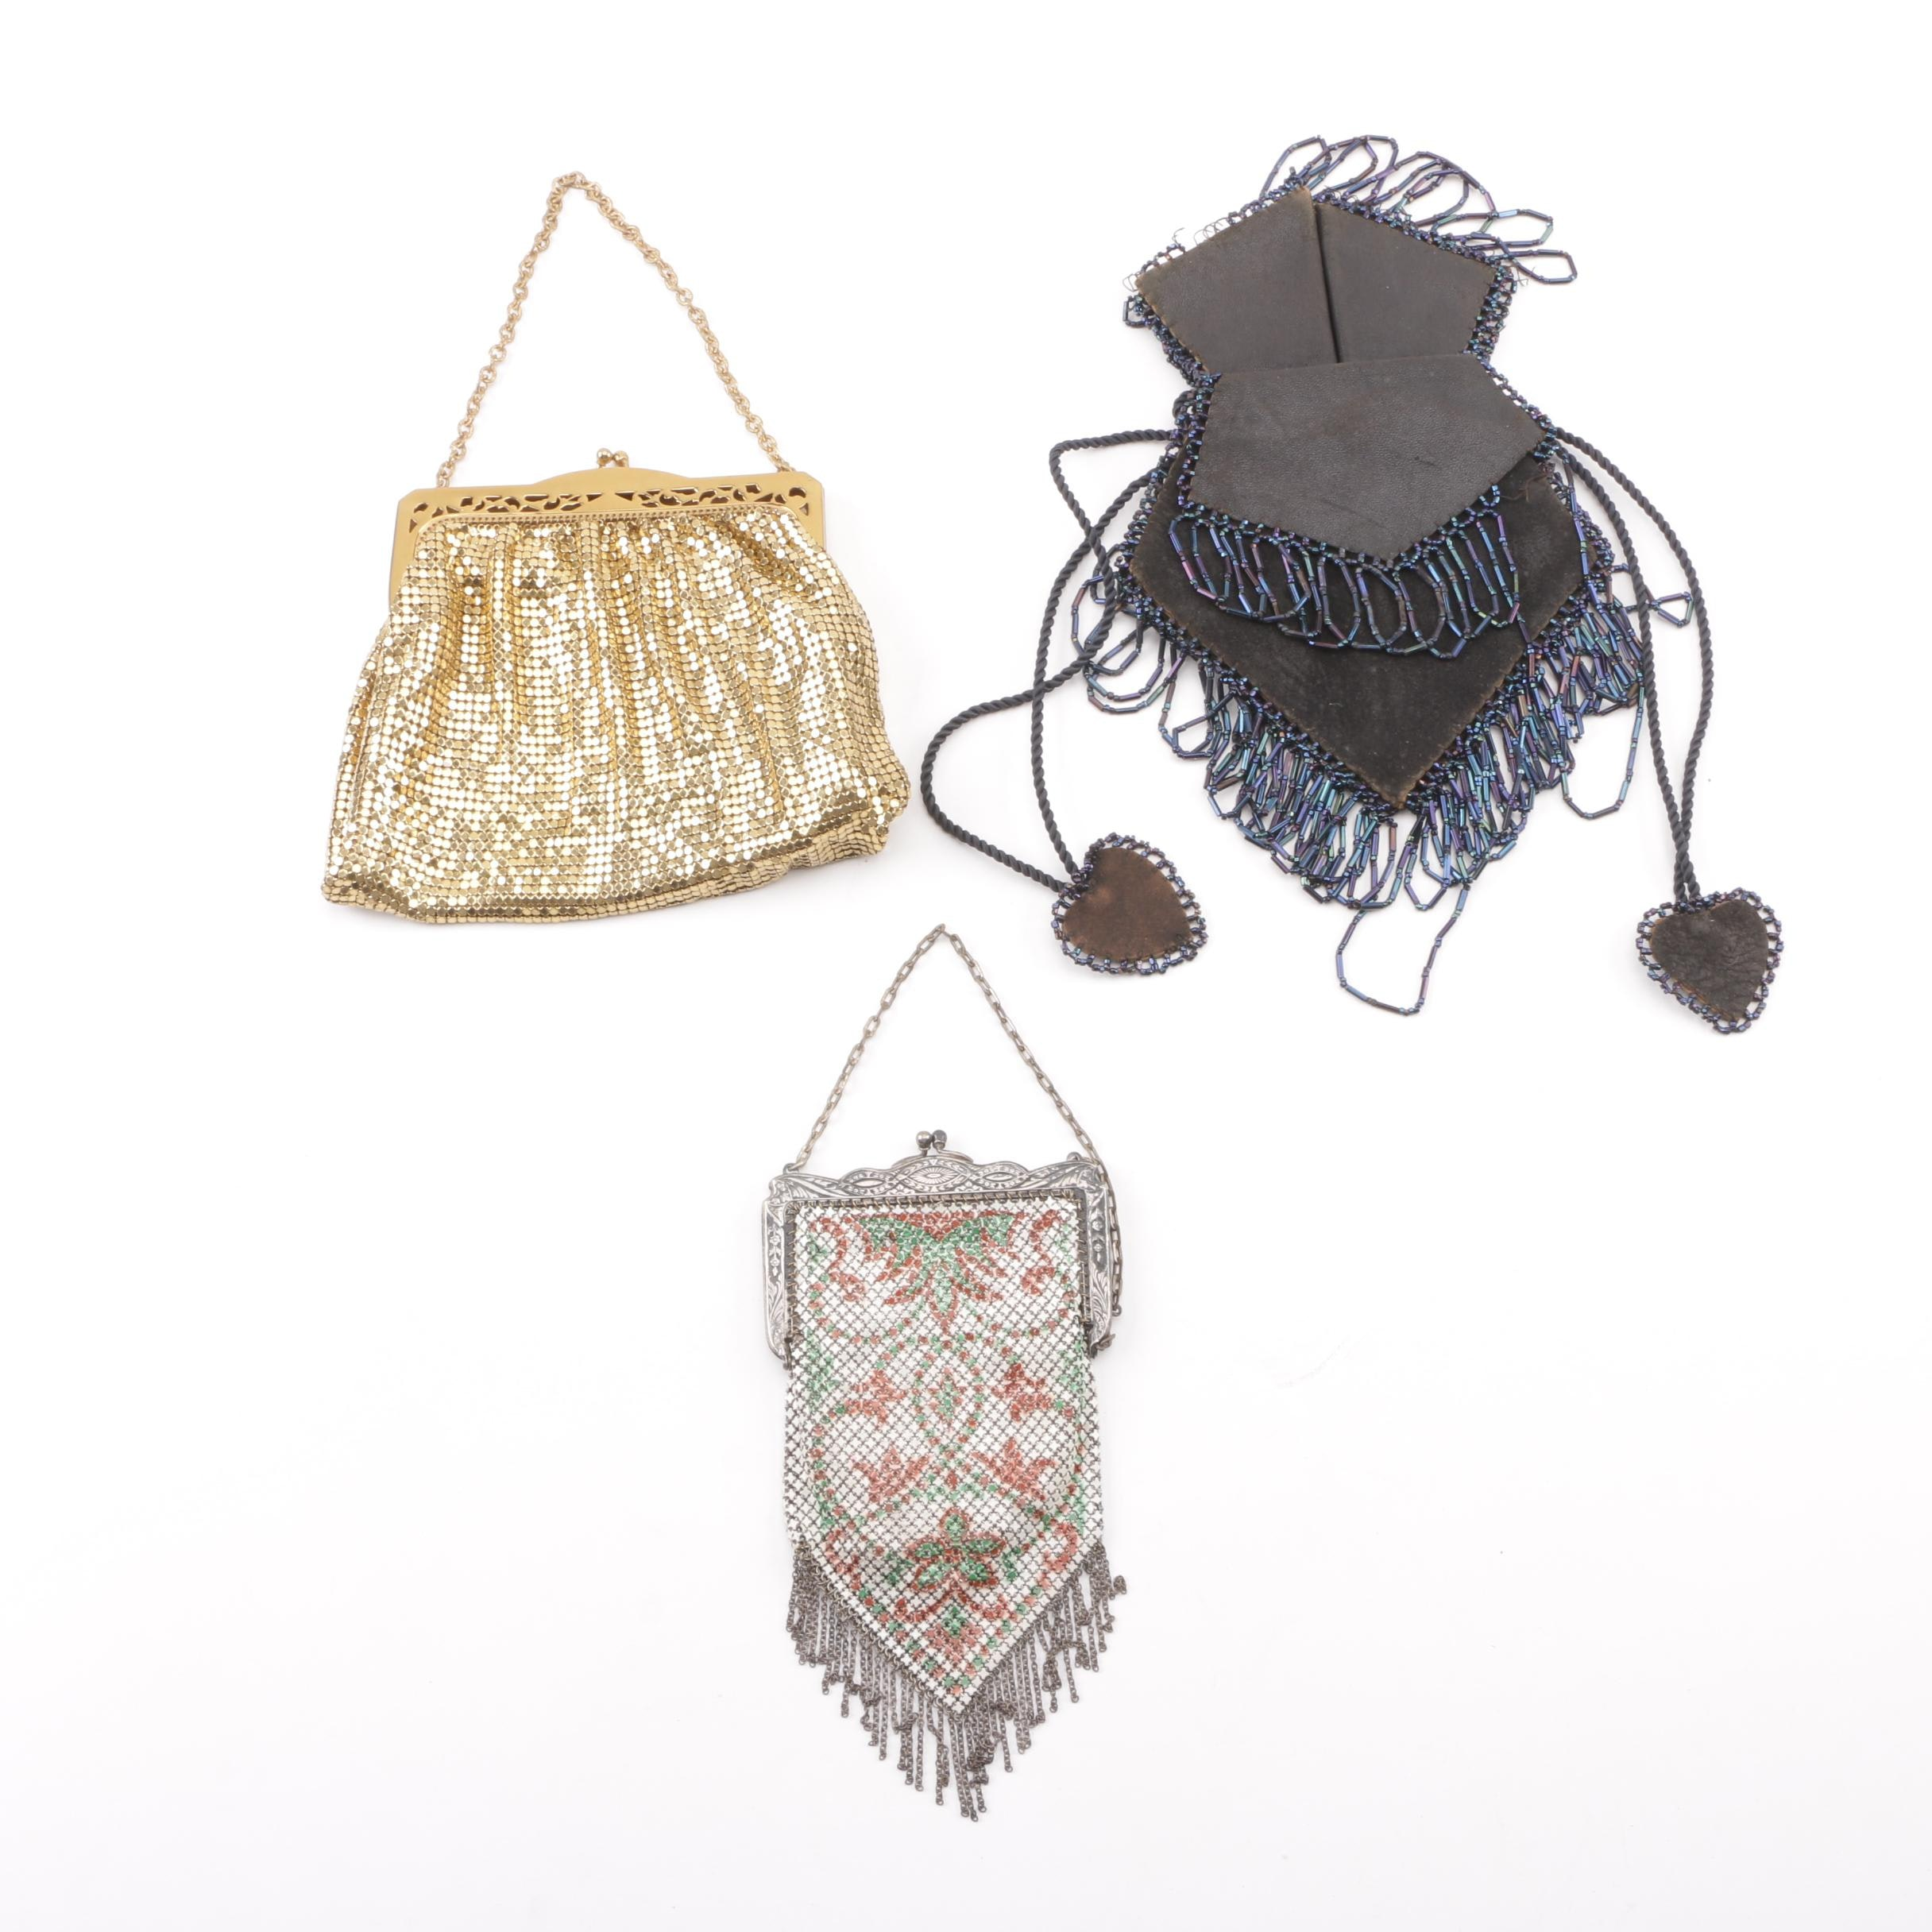 Whiting & Davis, Mandalian, and Other Vintage Evening Bags